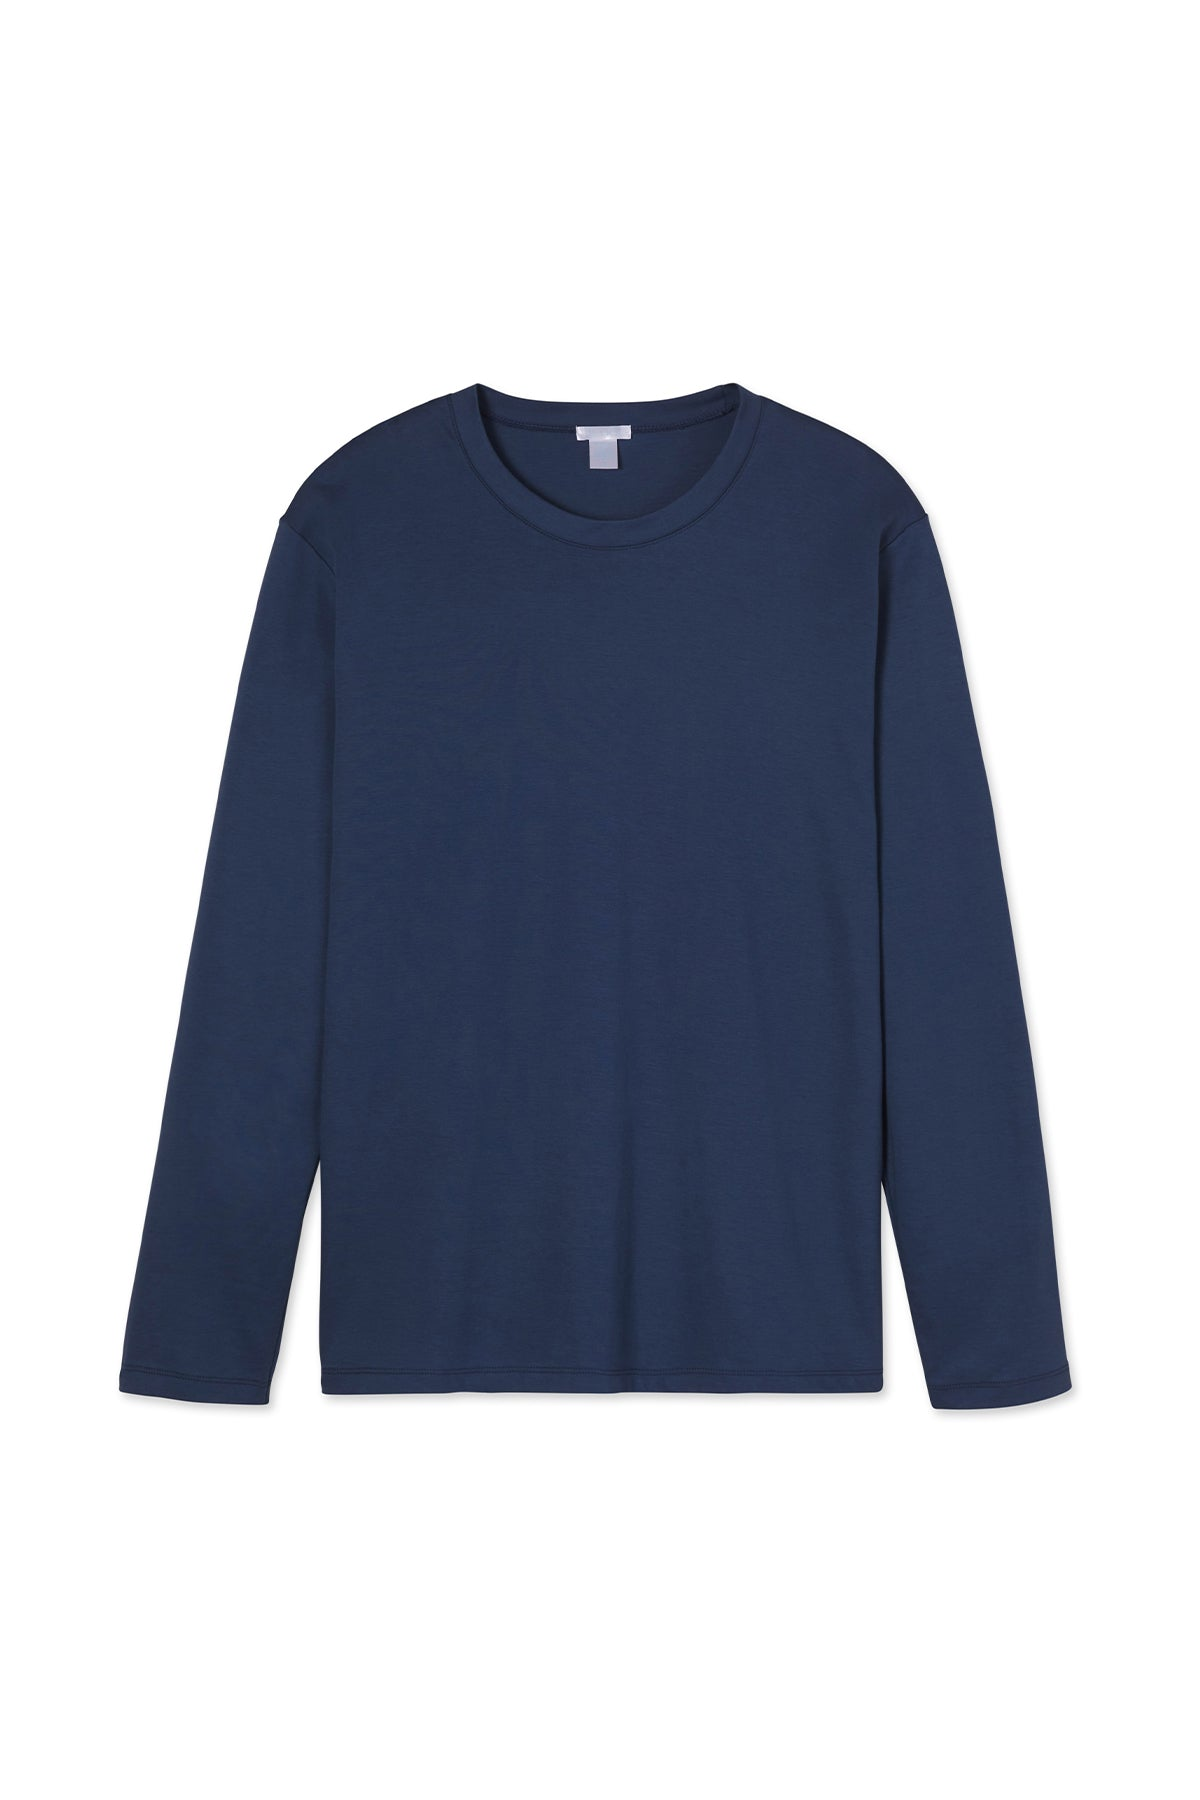 Men's Long Sleeve Pima Tee in True Navy